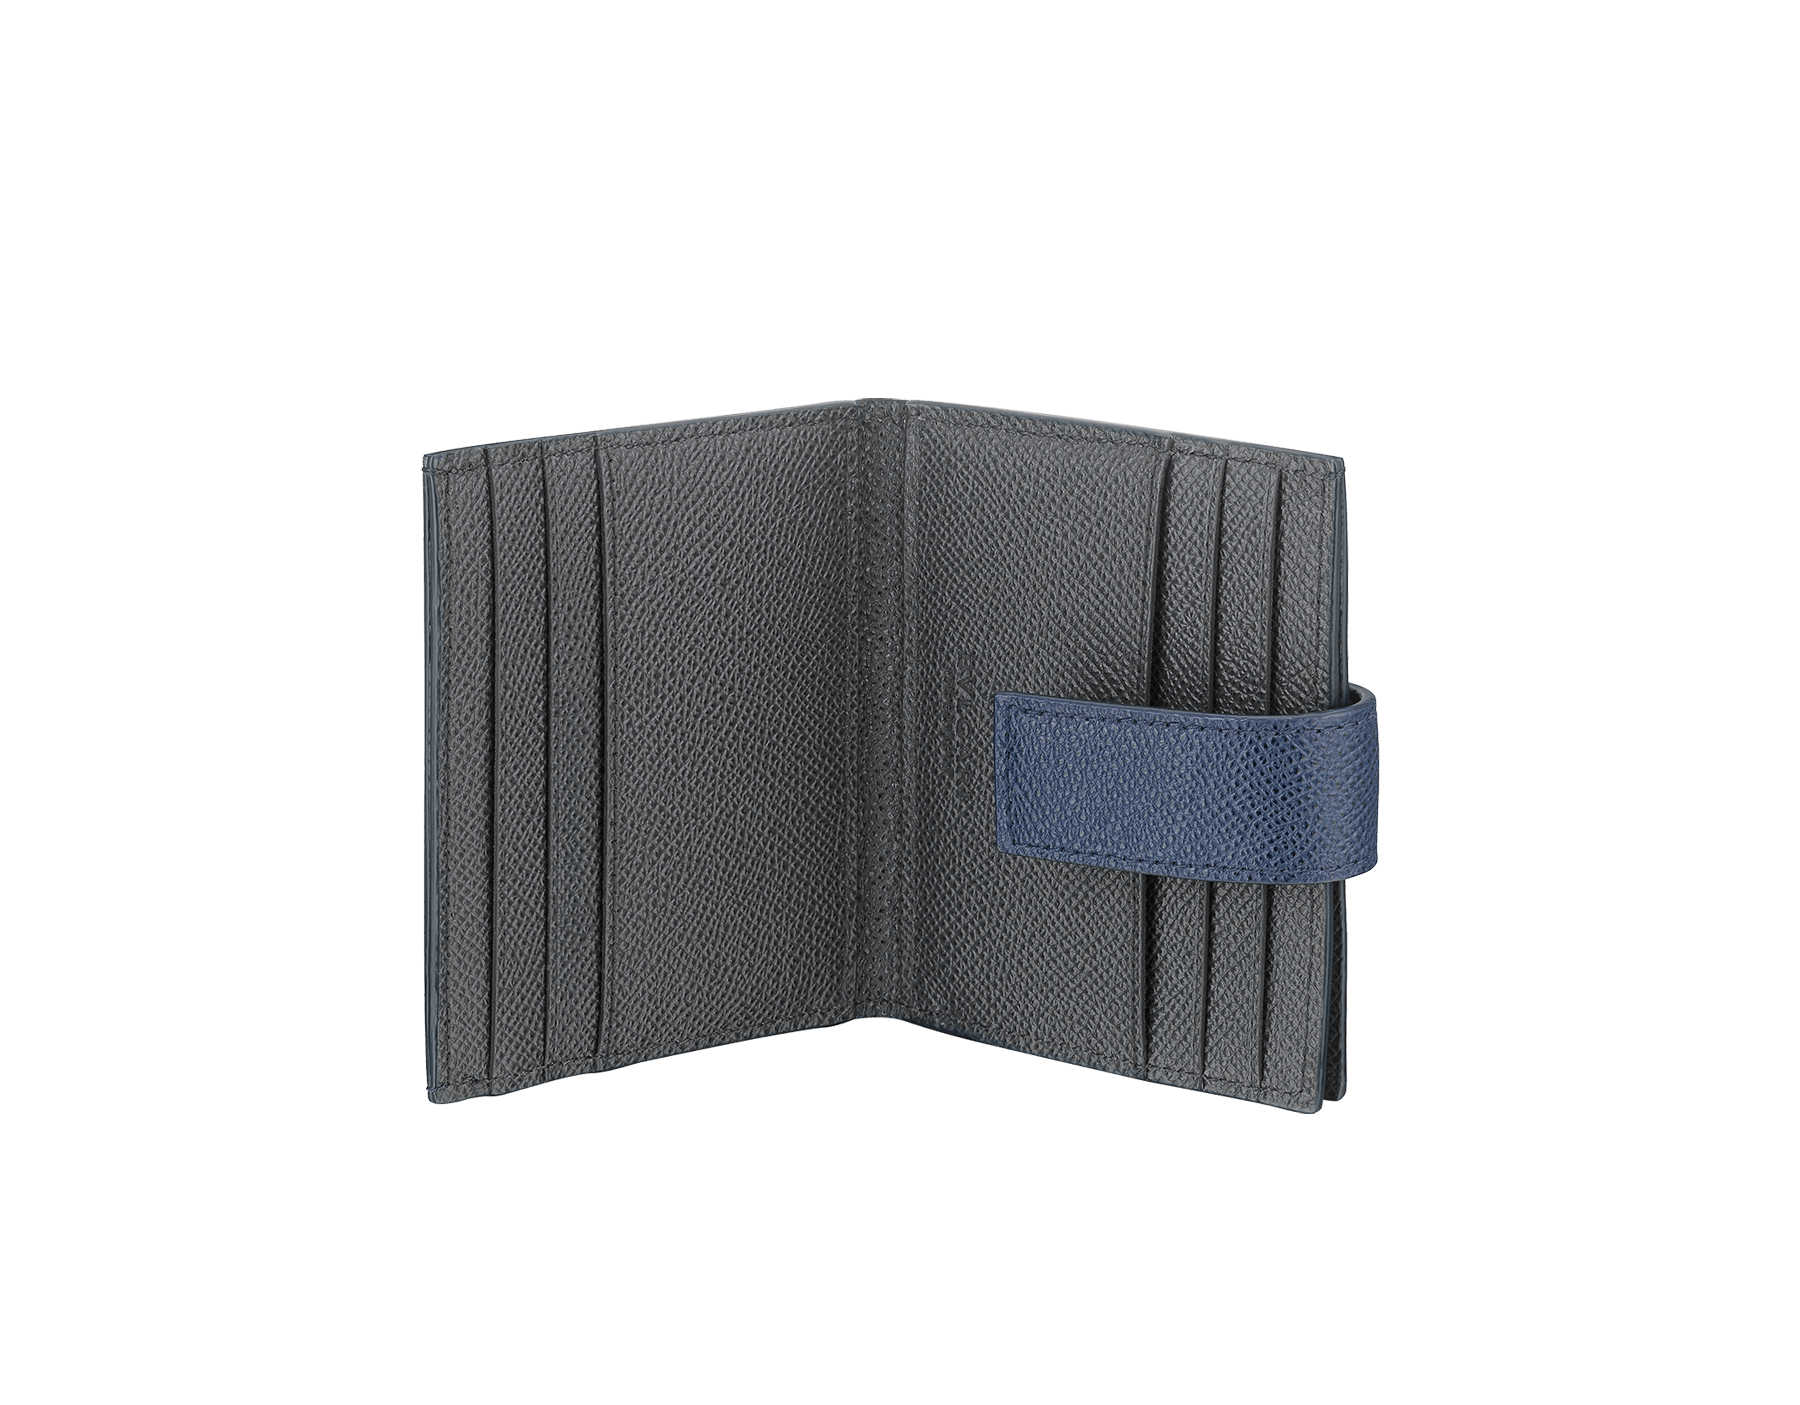 BVLGARI BVLGARI folded credit card holder in denim sapphire and charcoal diamond grain calf leather. Iconic logo decoration in palladium-plated brass. 289235 image 2